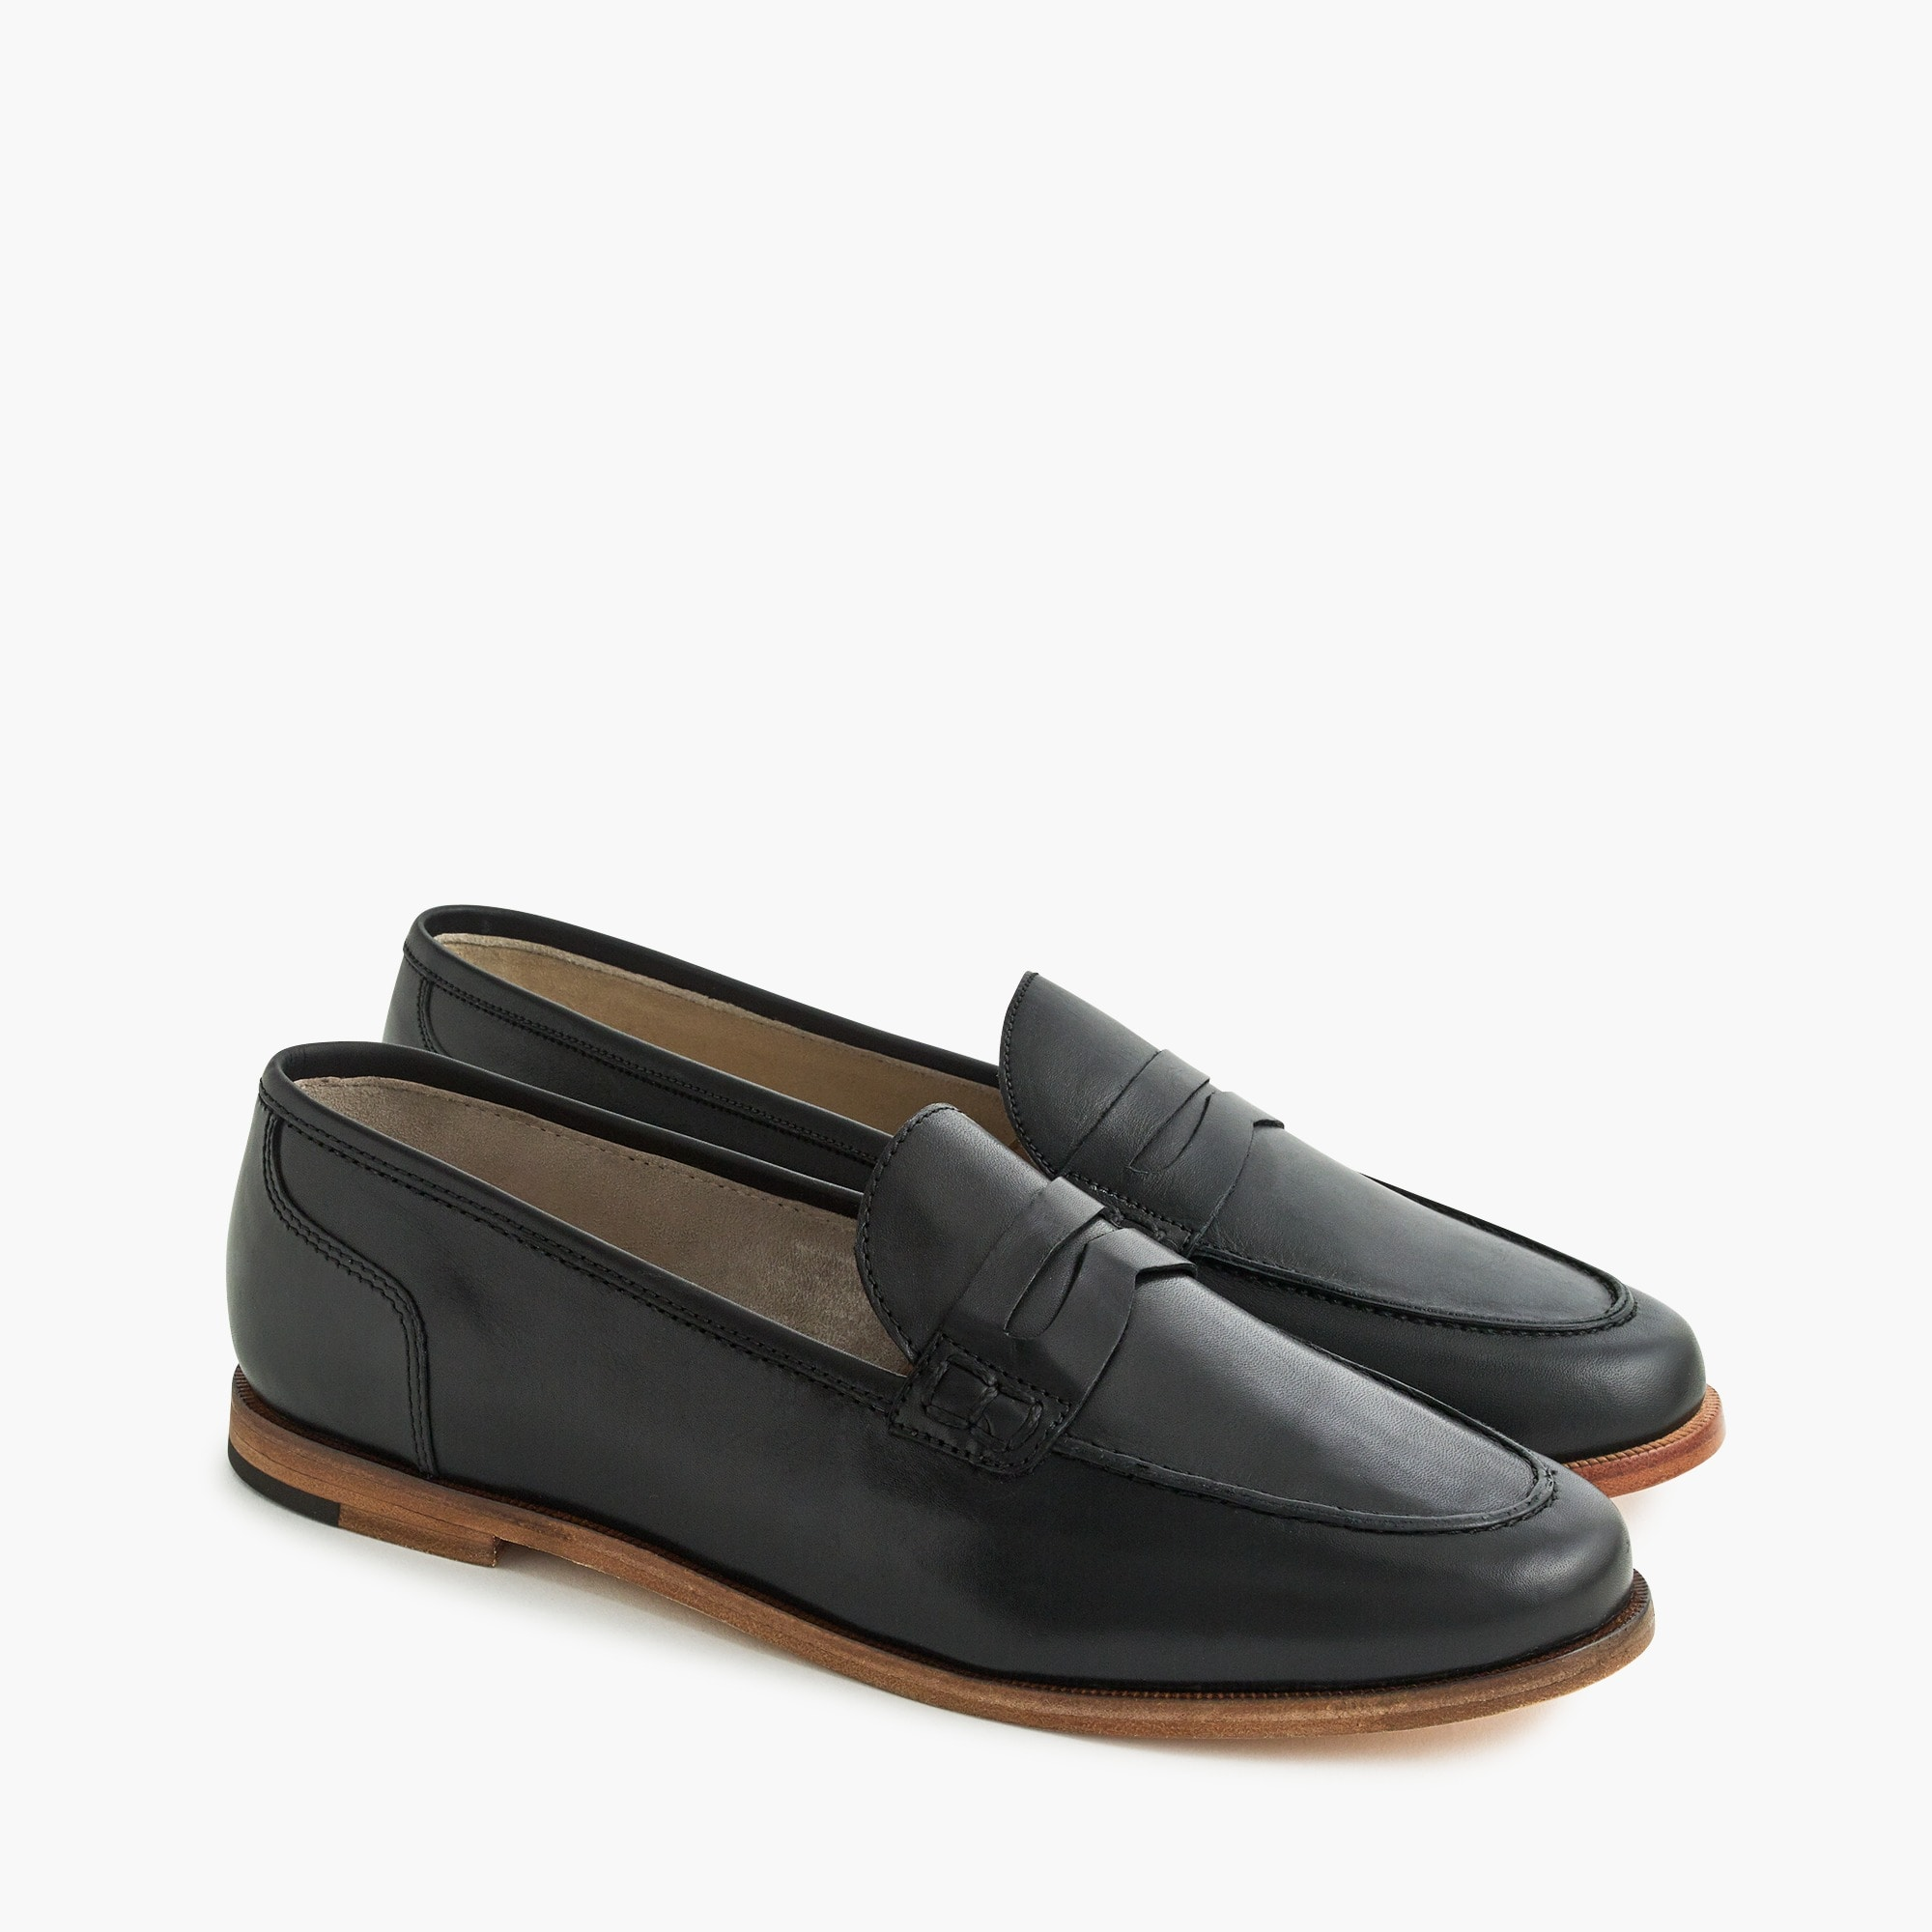 Image 2 for Ryan penny loafers in leather